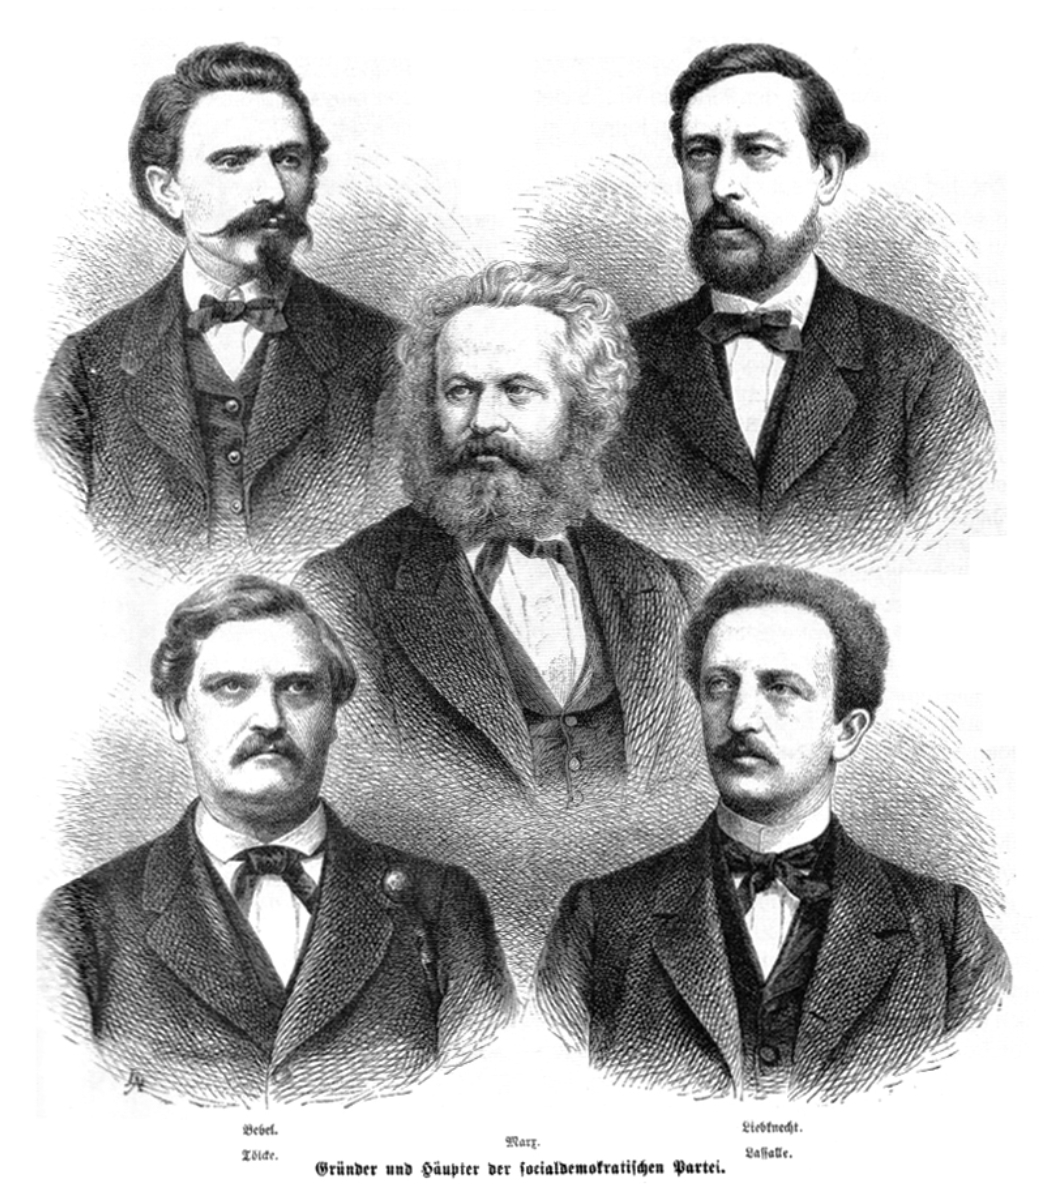 """Leaders of the early German worker's movement (above: <a href=""""/content/August_Bebel"""" style=""""color:blue"""">August Bebel</a>, <a href=""""/content/Wilhelm_Liebknecht"""" style=""""color:blue"""">Wilhelm Liebknecht</a>, in the center: <a href=""""/content/Karl_Marx"""" style=""""color:blue"""">Karl Marx</a>, below: Carl Wilhelm Tölcke, <a href=""""/content/Ferdinand_Lassalle"""" style=""""color:blue"""">Ferdinand Lassalle</a>)"""